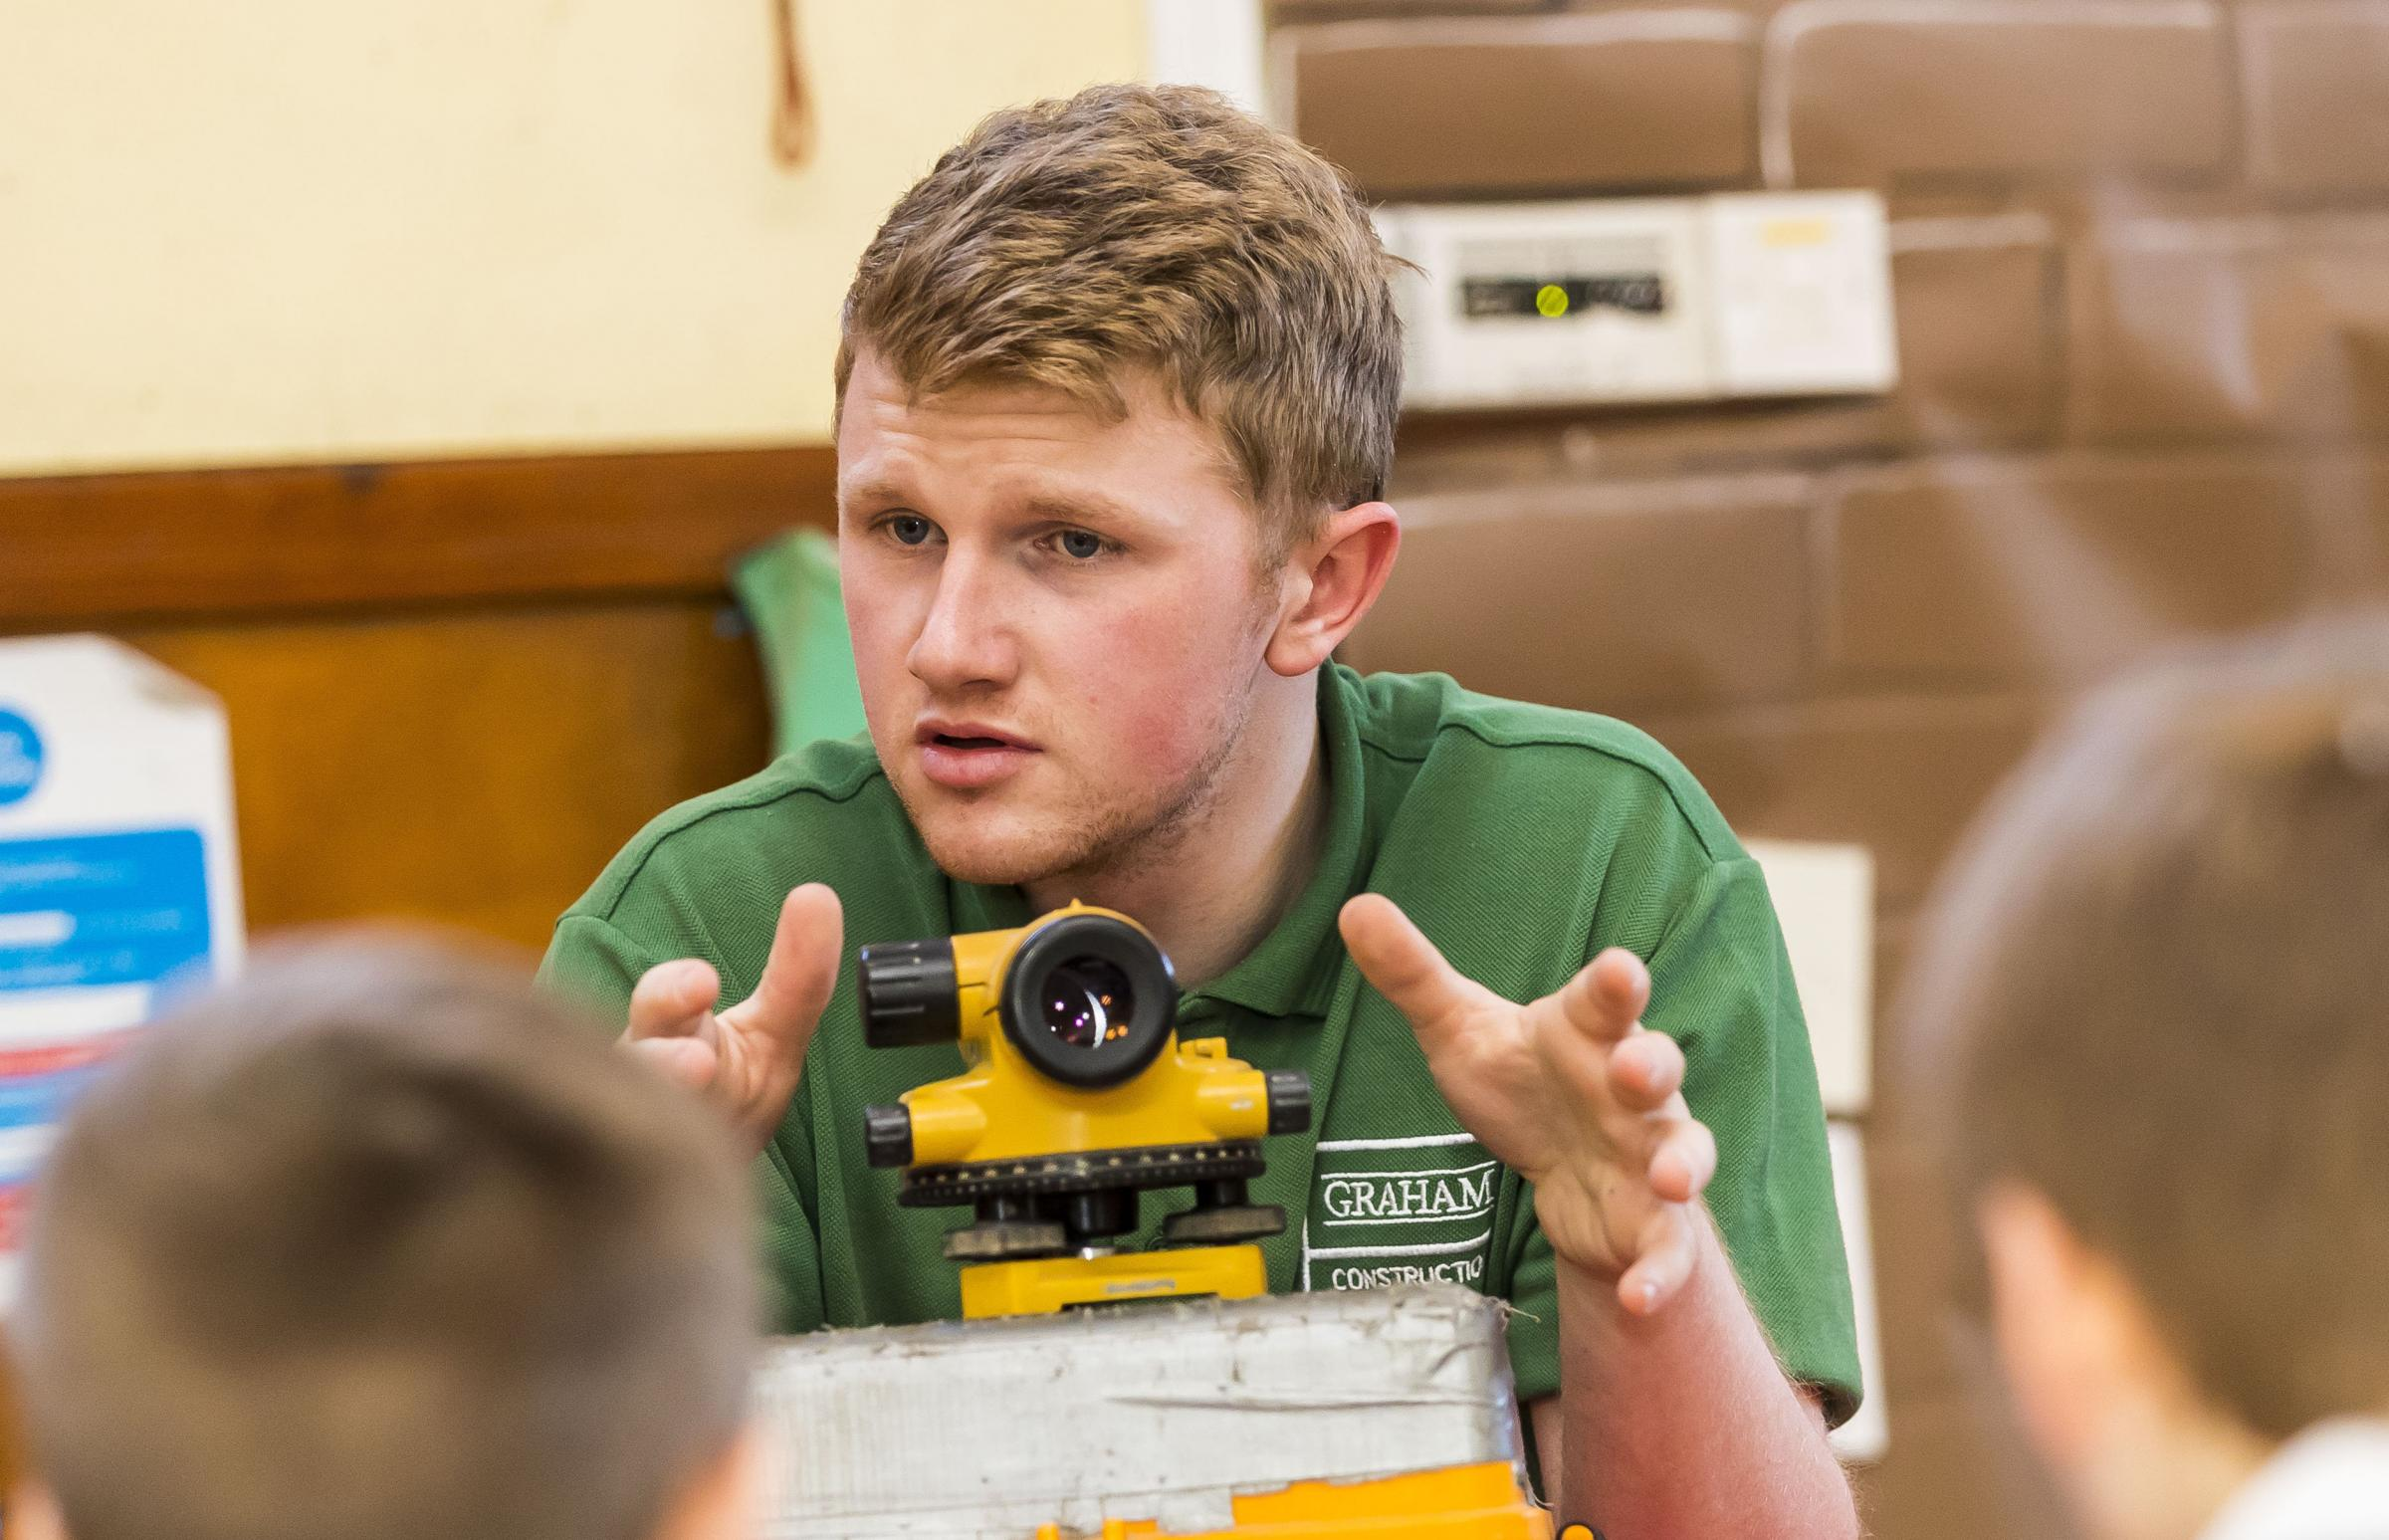 Apprentice site engineer Greg Wilkinson spoke at the event